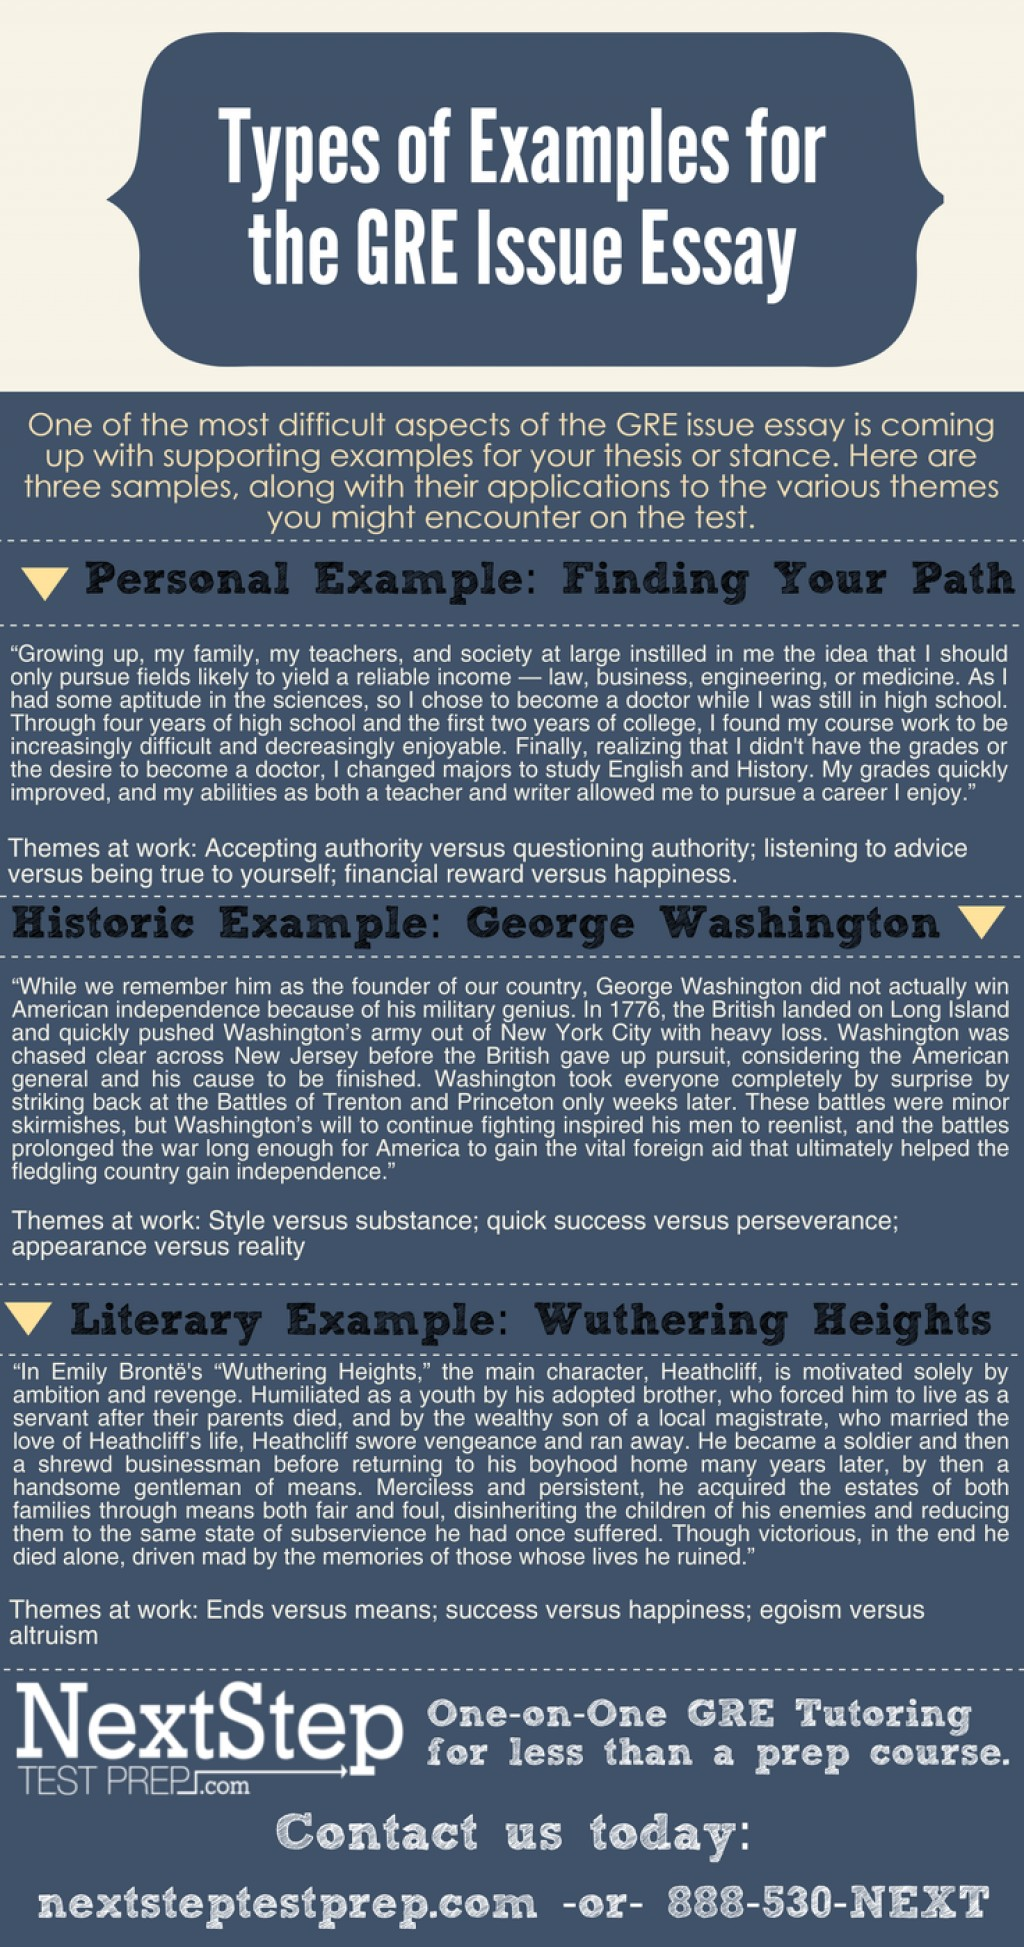 006 Issue Essay Gre Example Examples Ig Draft 28129 Scaled Stunning Tips Template Ets Large